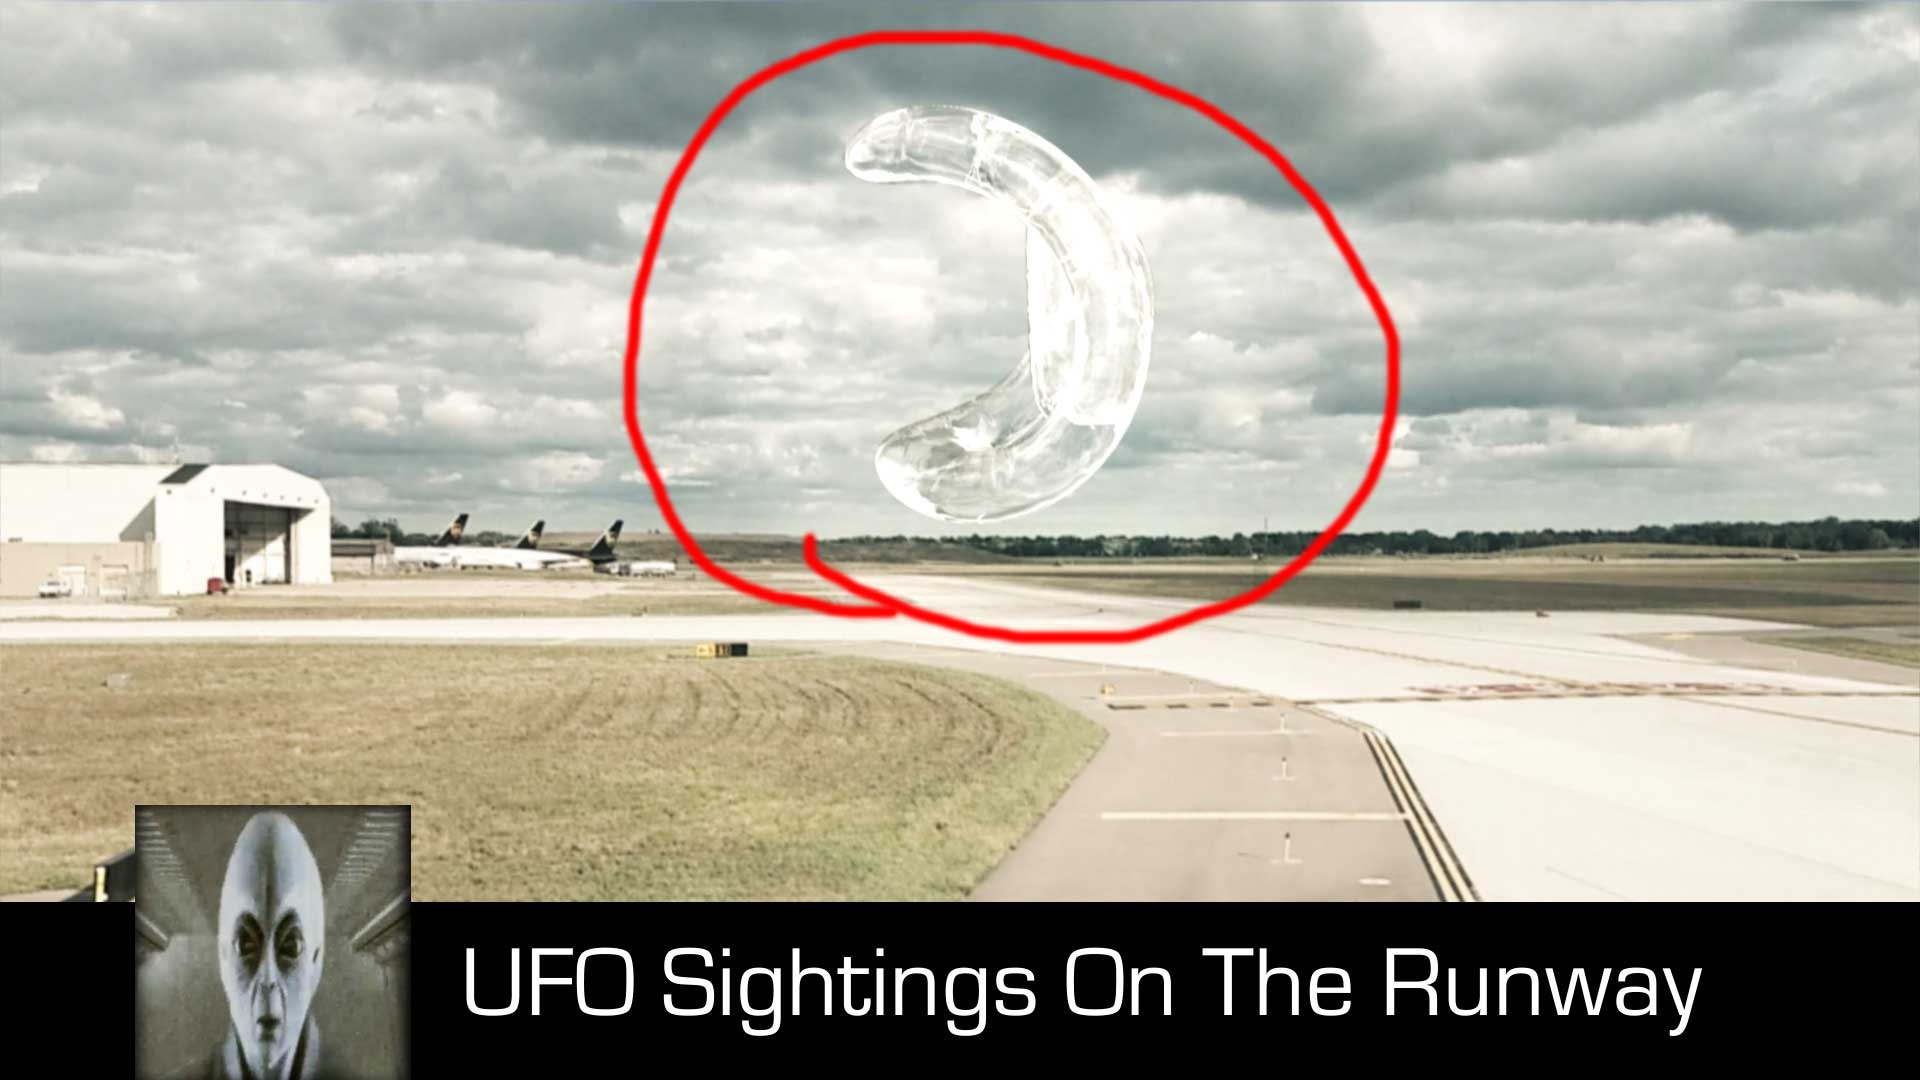 UFO-Sightings-On-The-Runway-August-29th-2017